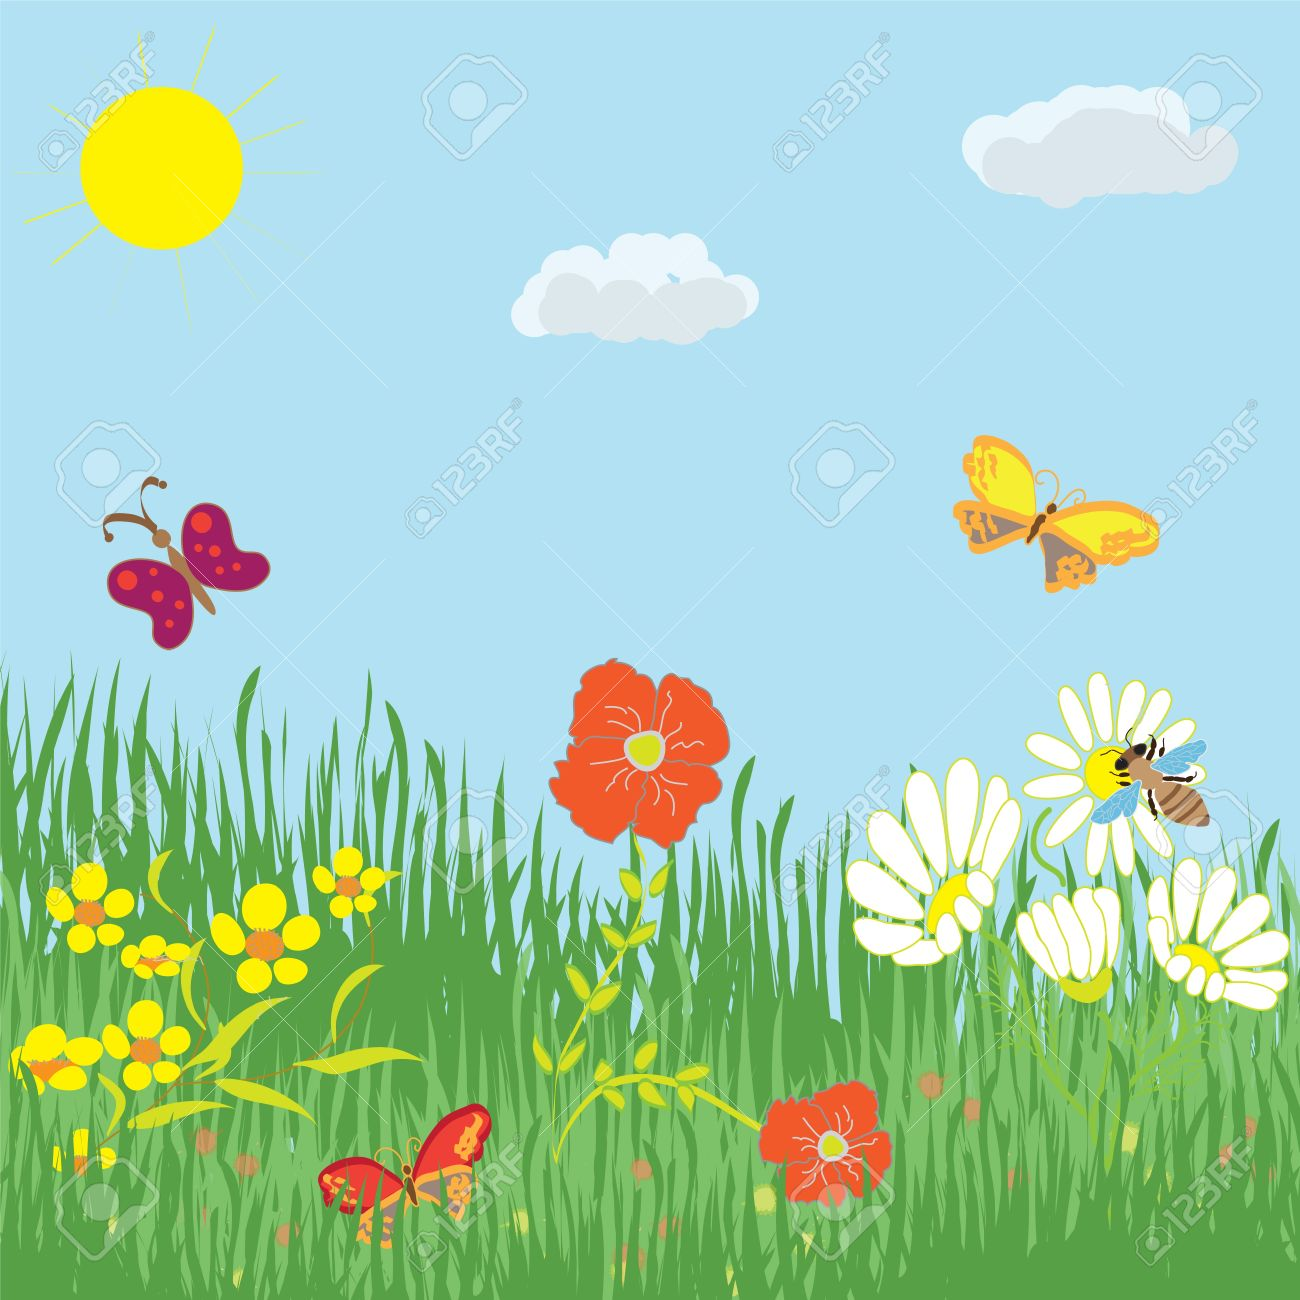 Image result for summer flowers cartoon images